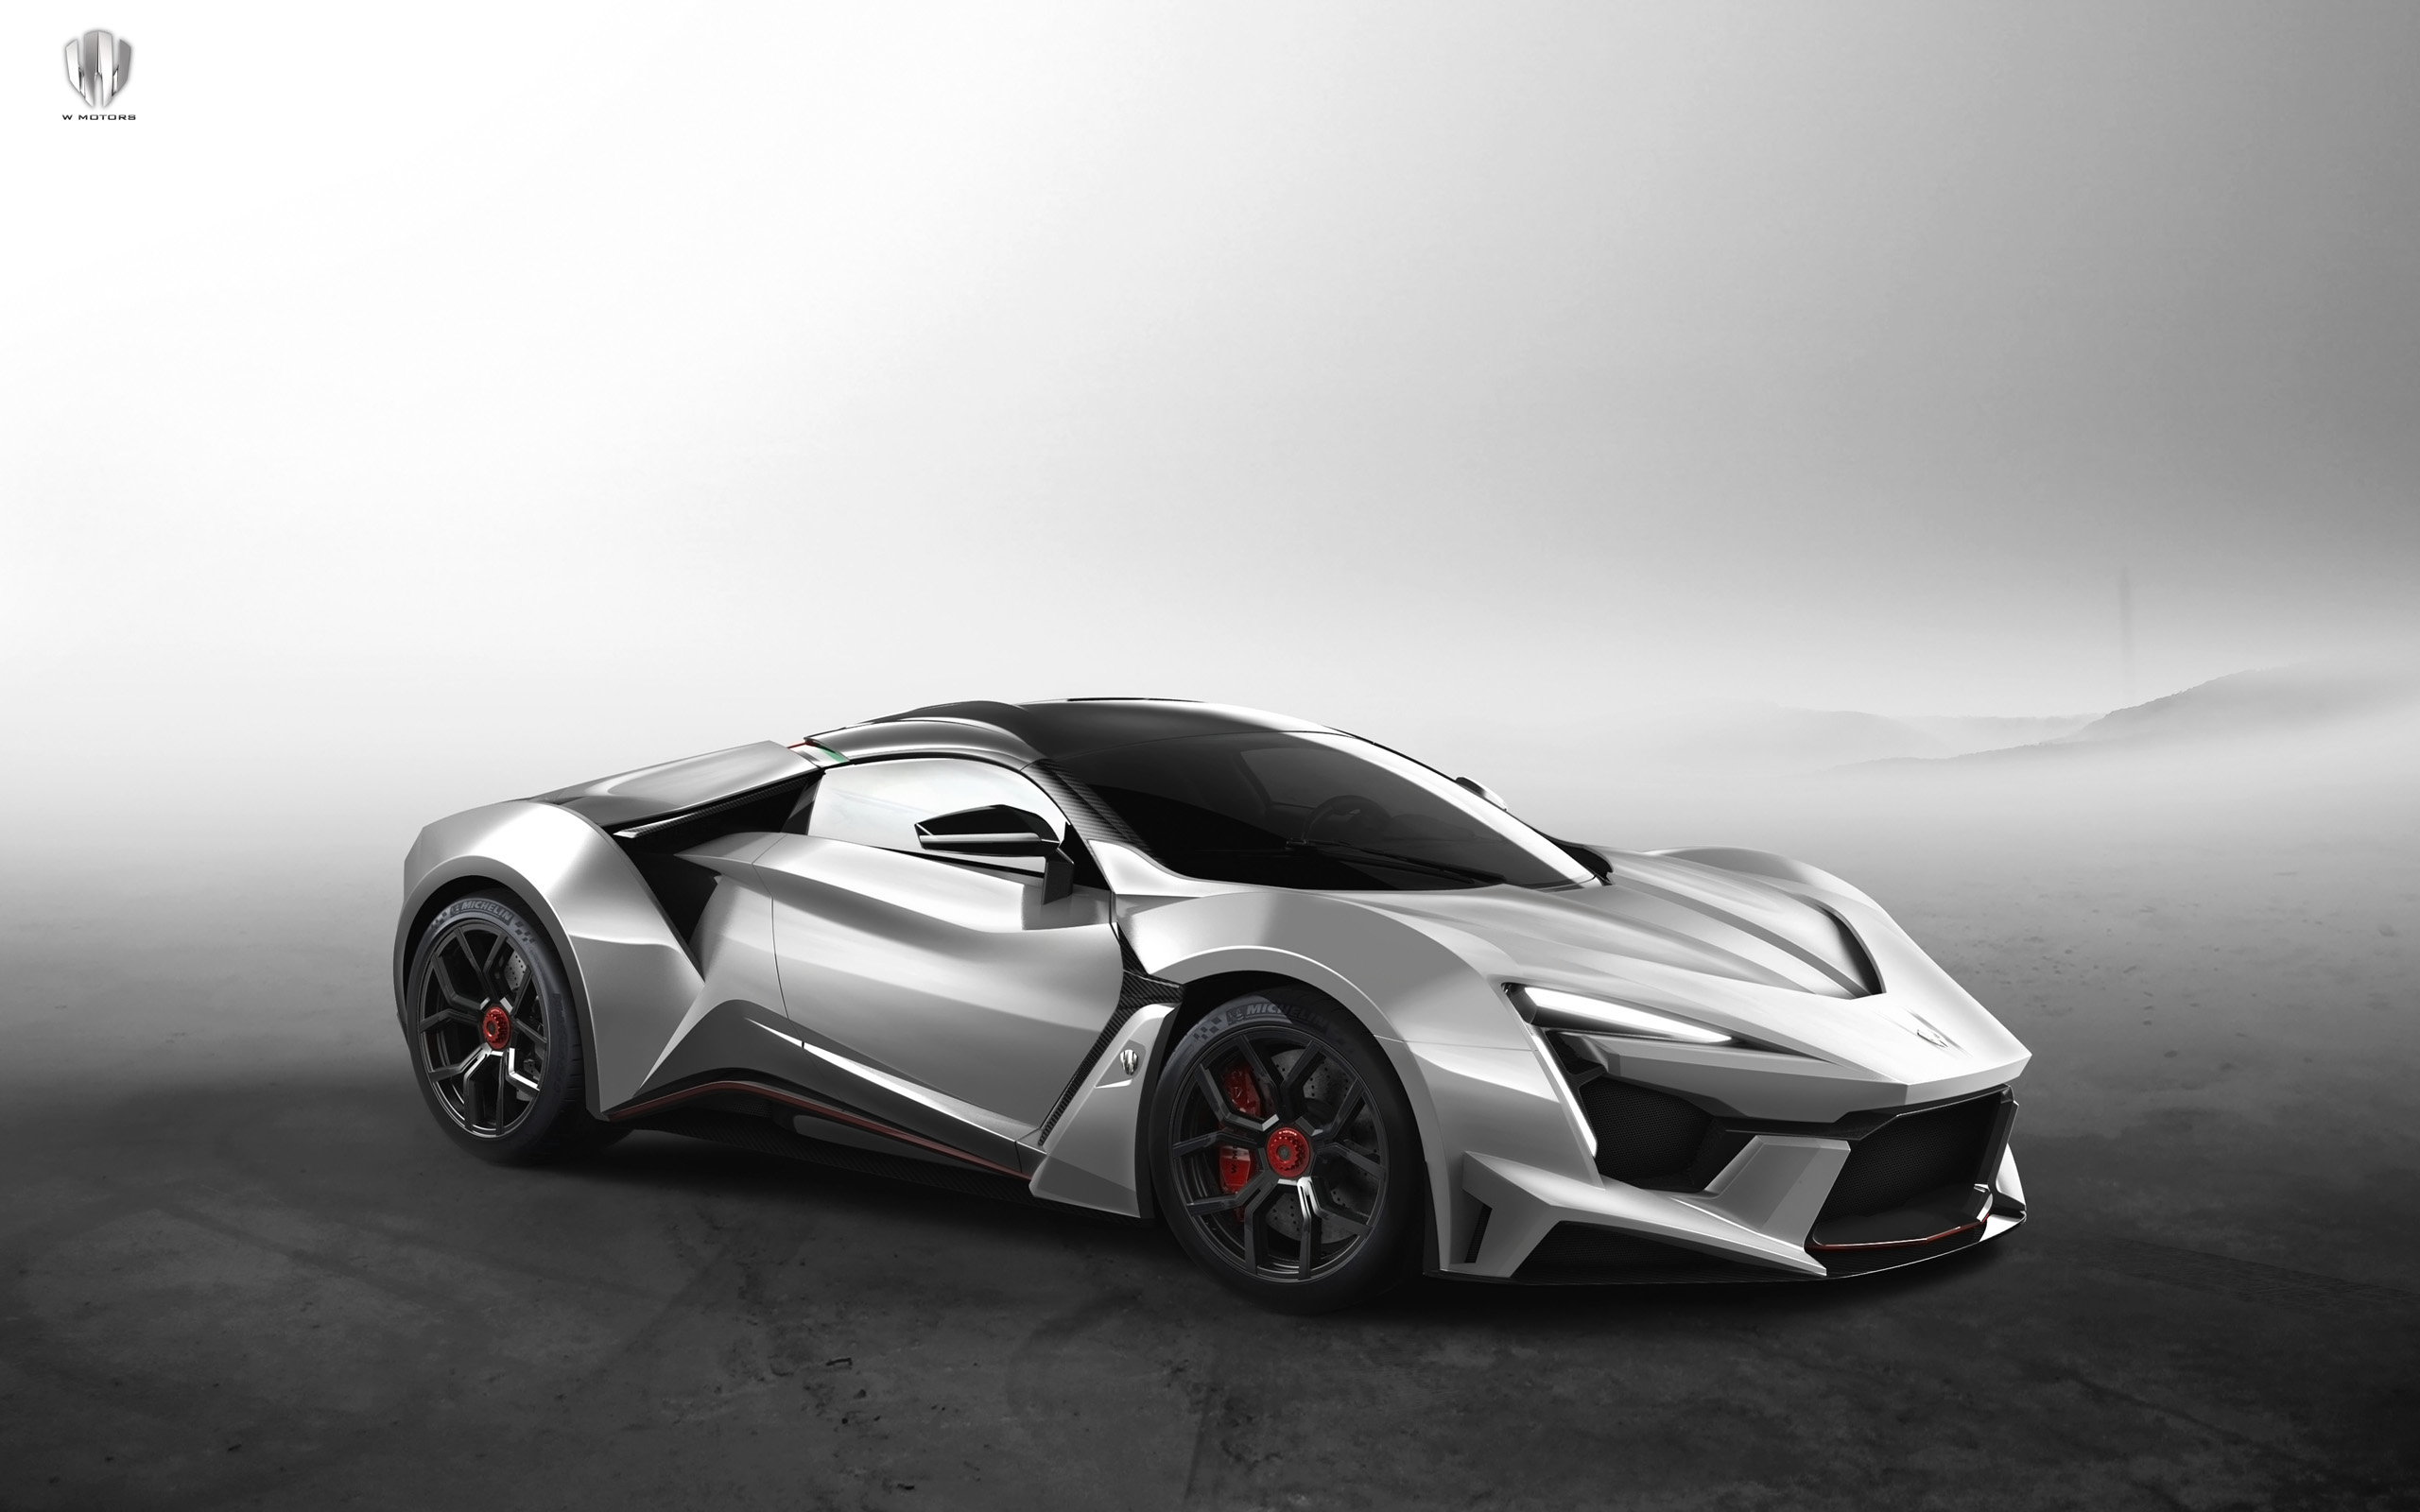 W motors supersport fenyr. обои скачать